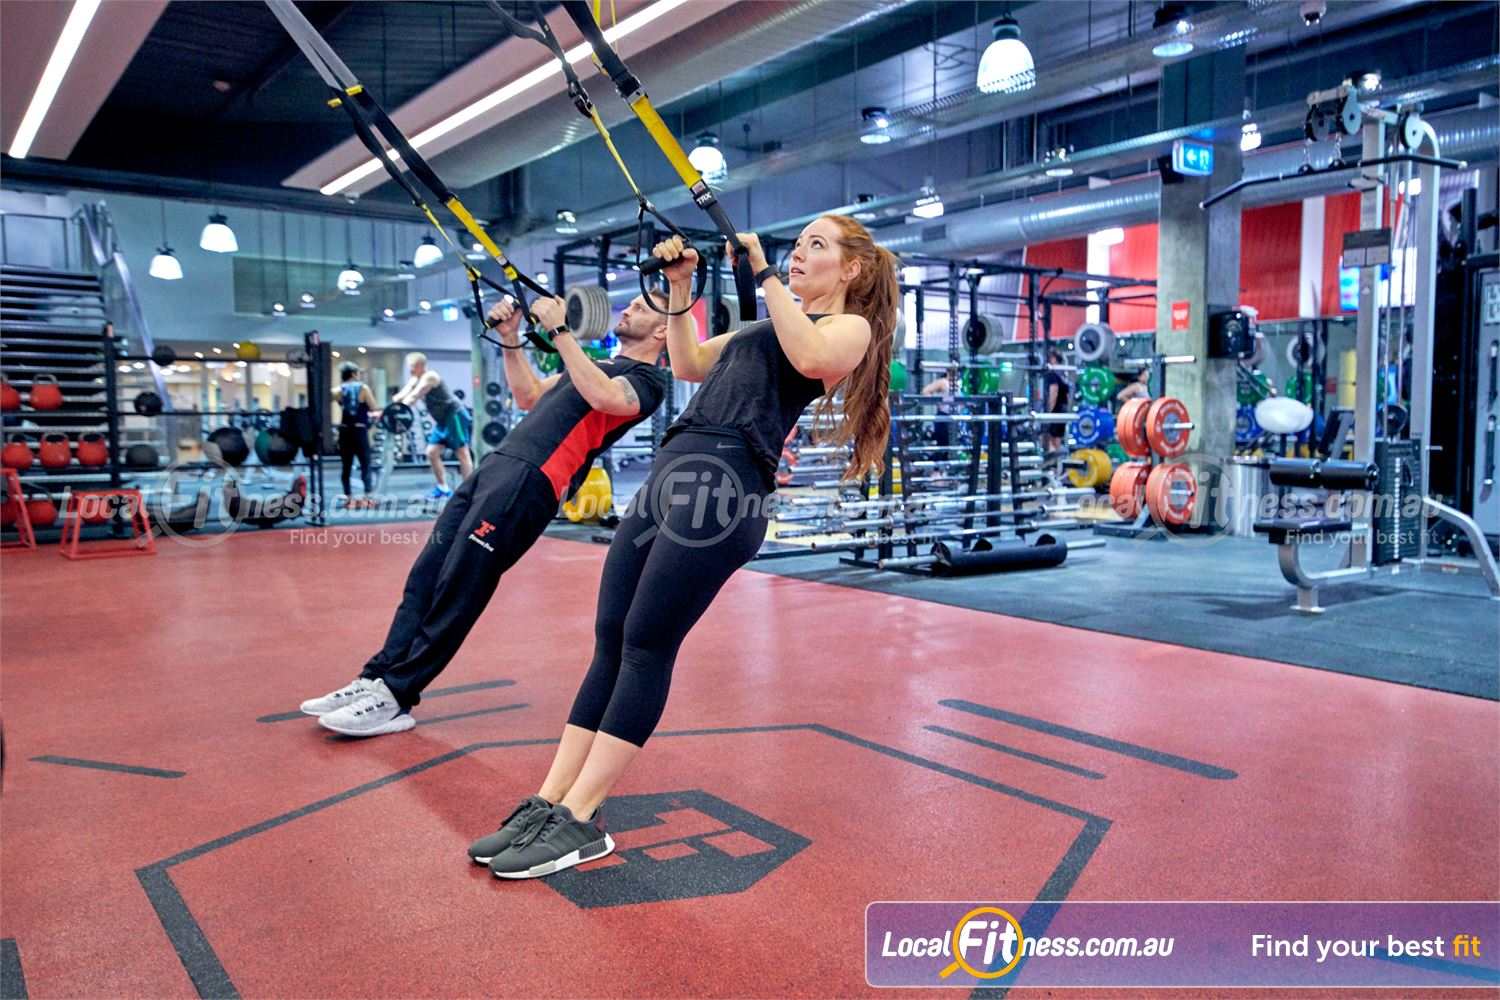 Fitness First Macquarie Ryde Work your core in our Macquariegym with TRX team training.